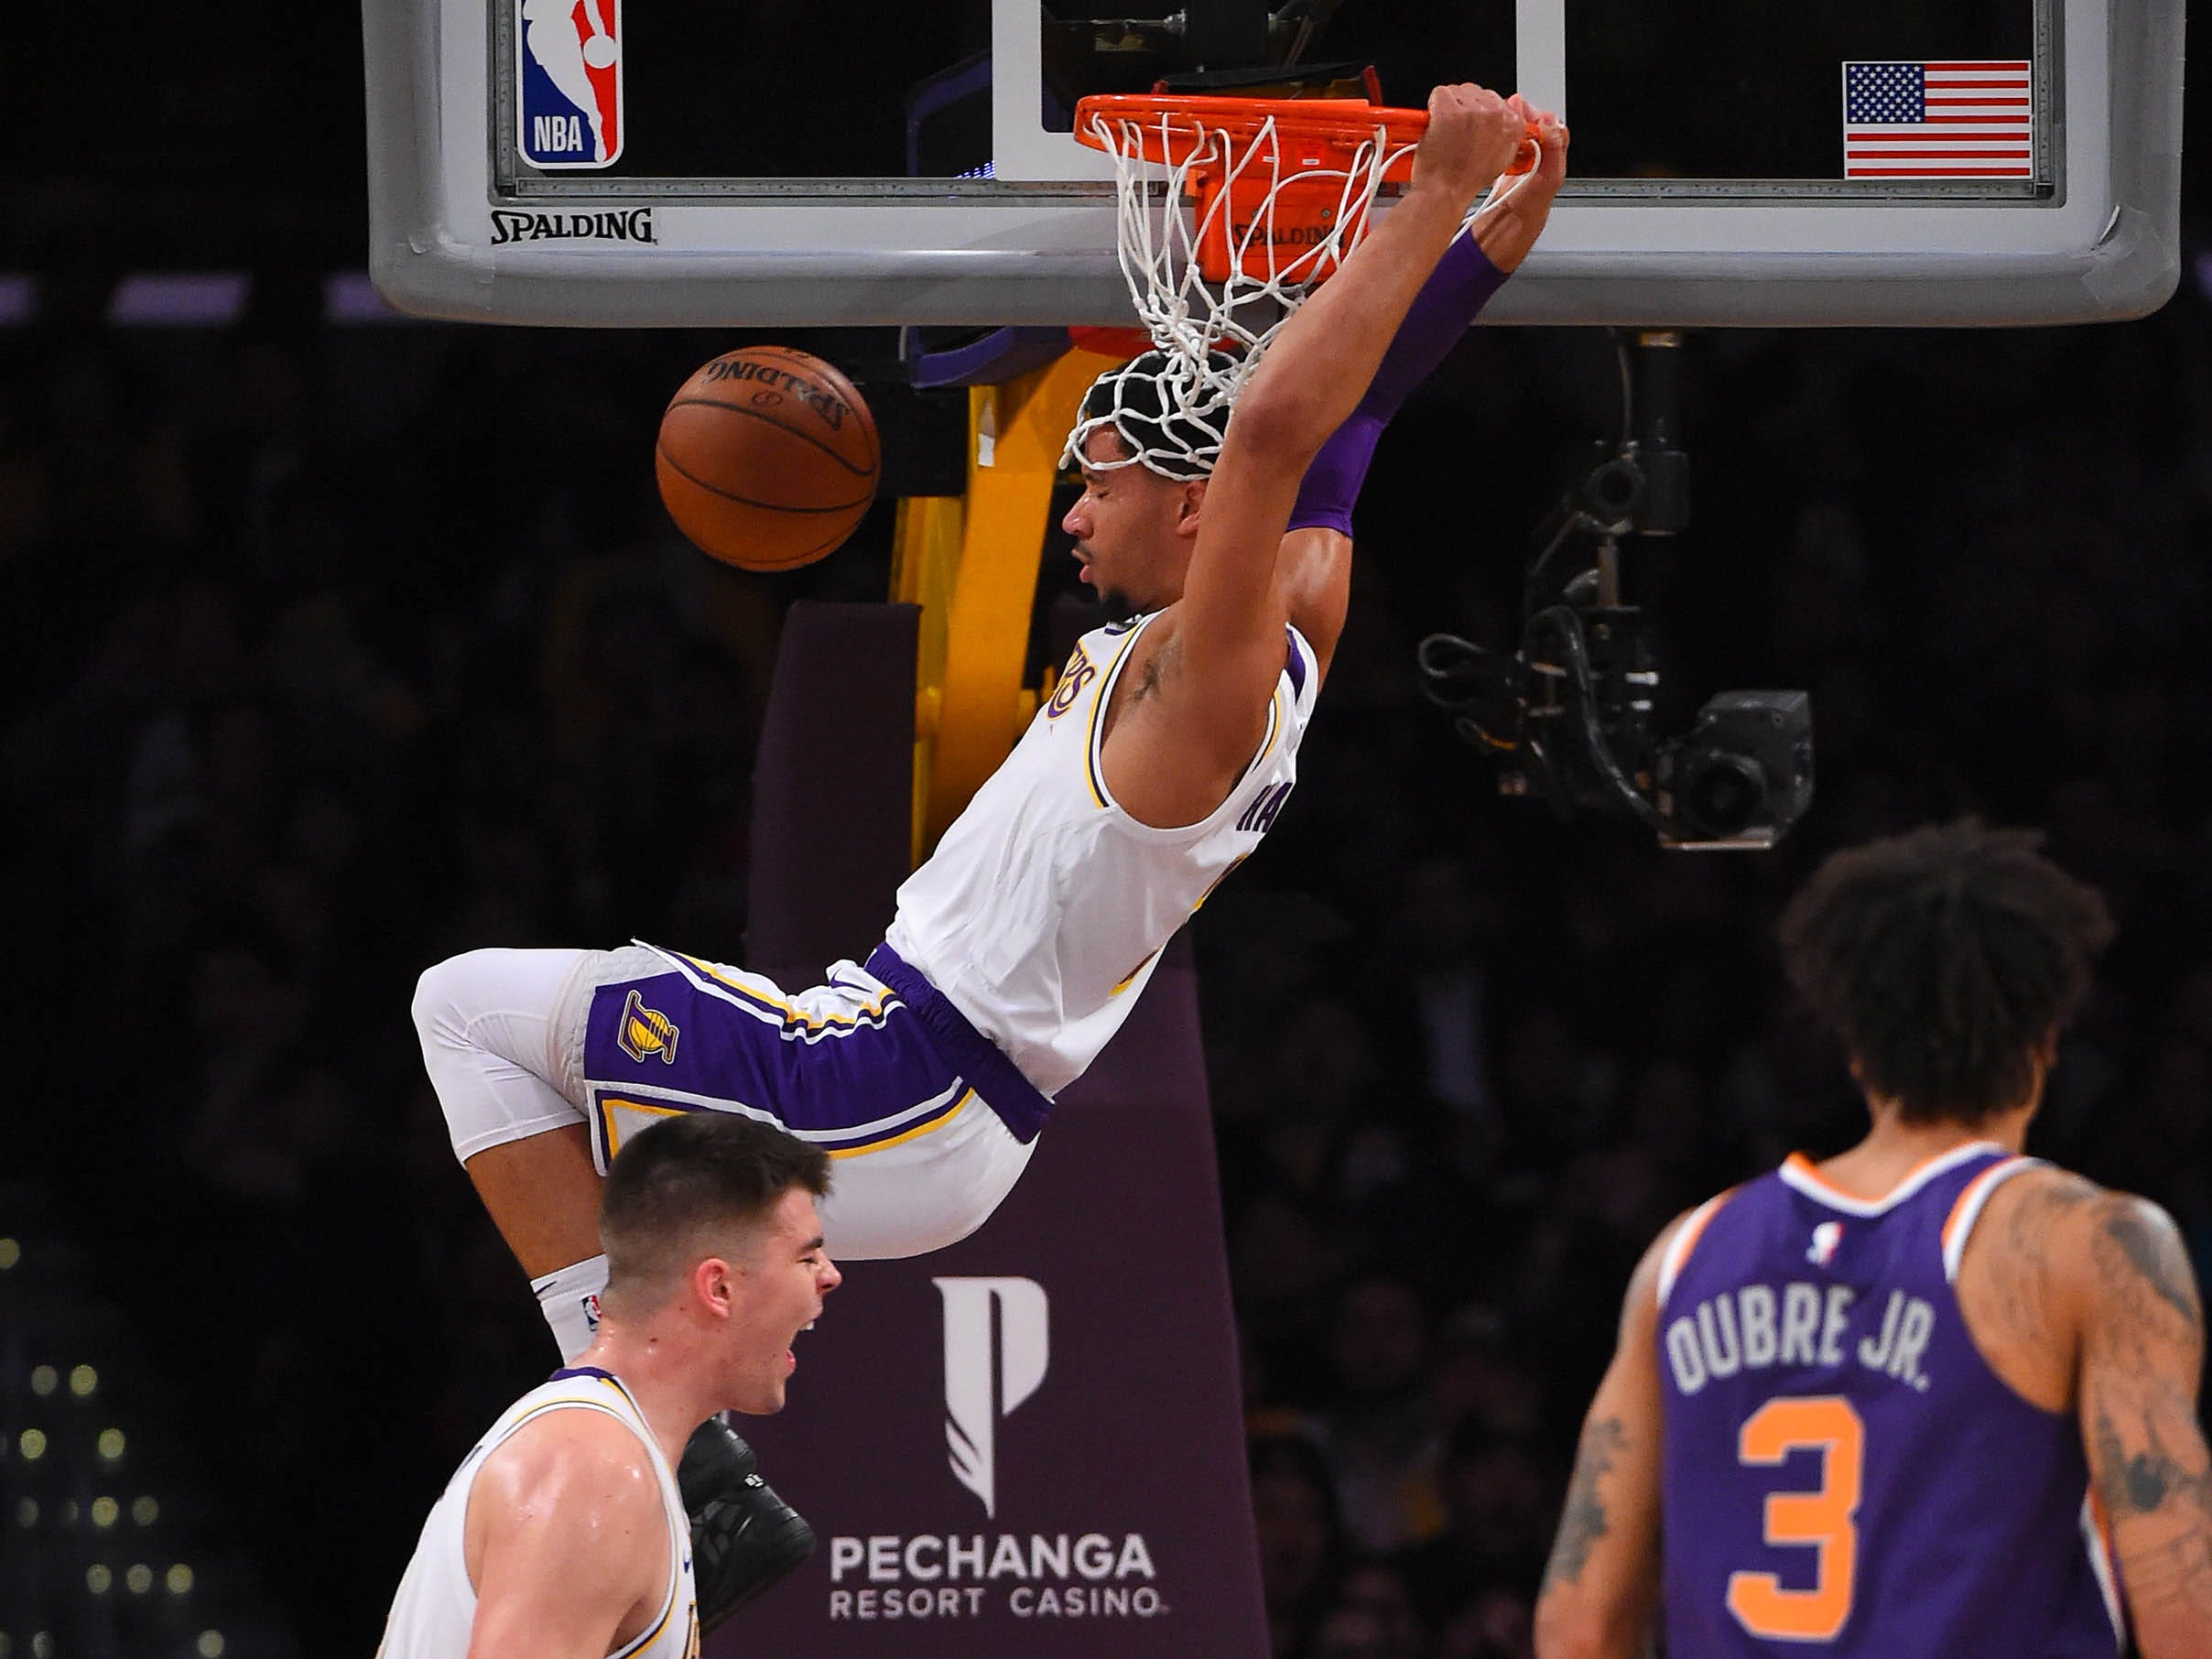 Jan 27, 2019: Los Angeles Lakers guard Josh Hart (3) dunks the ball in the first half of the game against the Phoenix Suns at Staples Center.